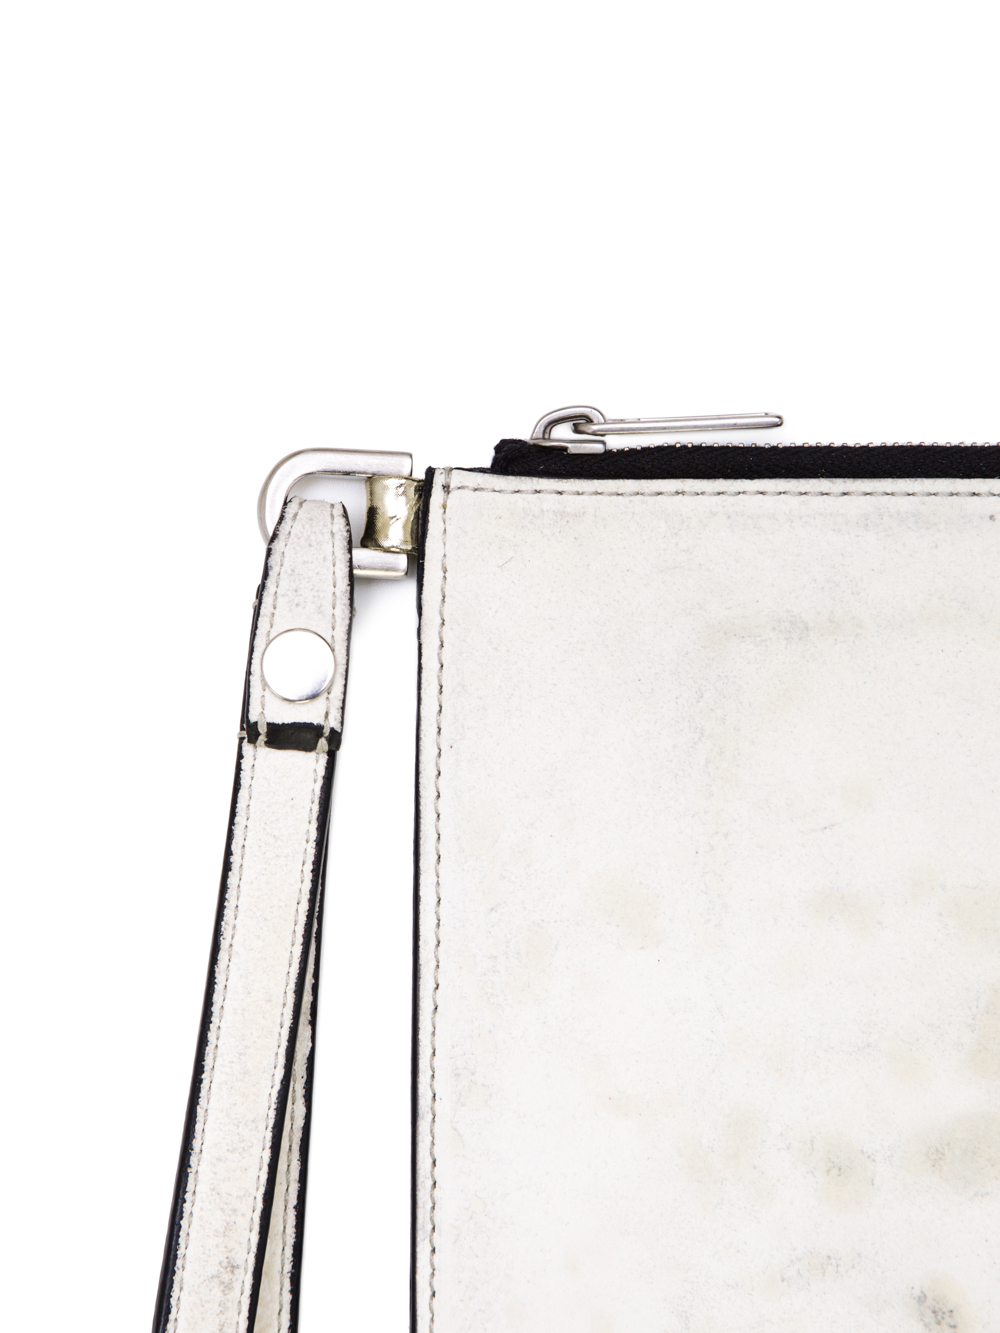 RICK OWENS SS19 BABEL TRAVEL POUCH IS RECTANGLUAR